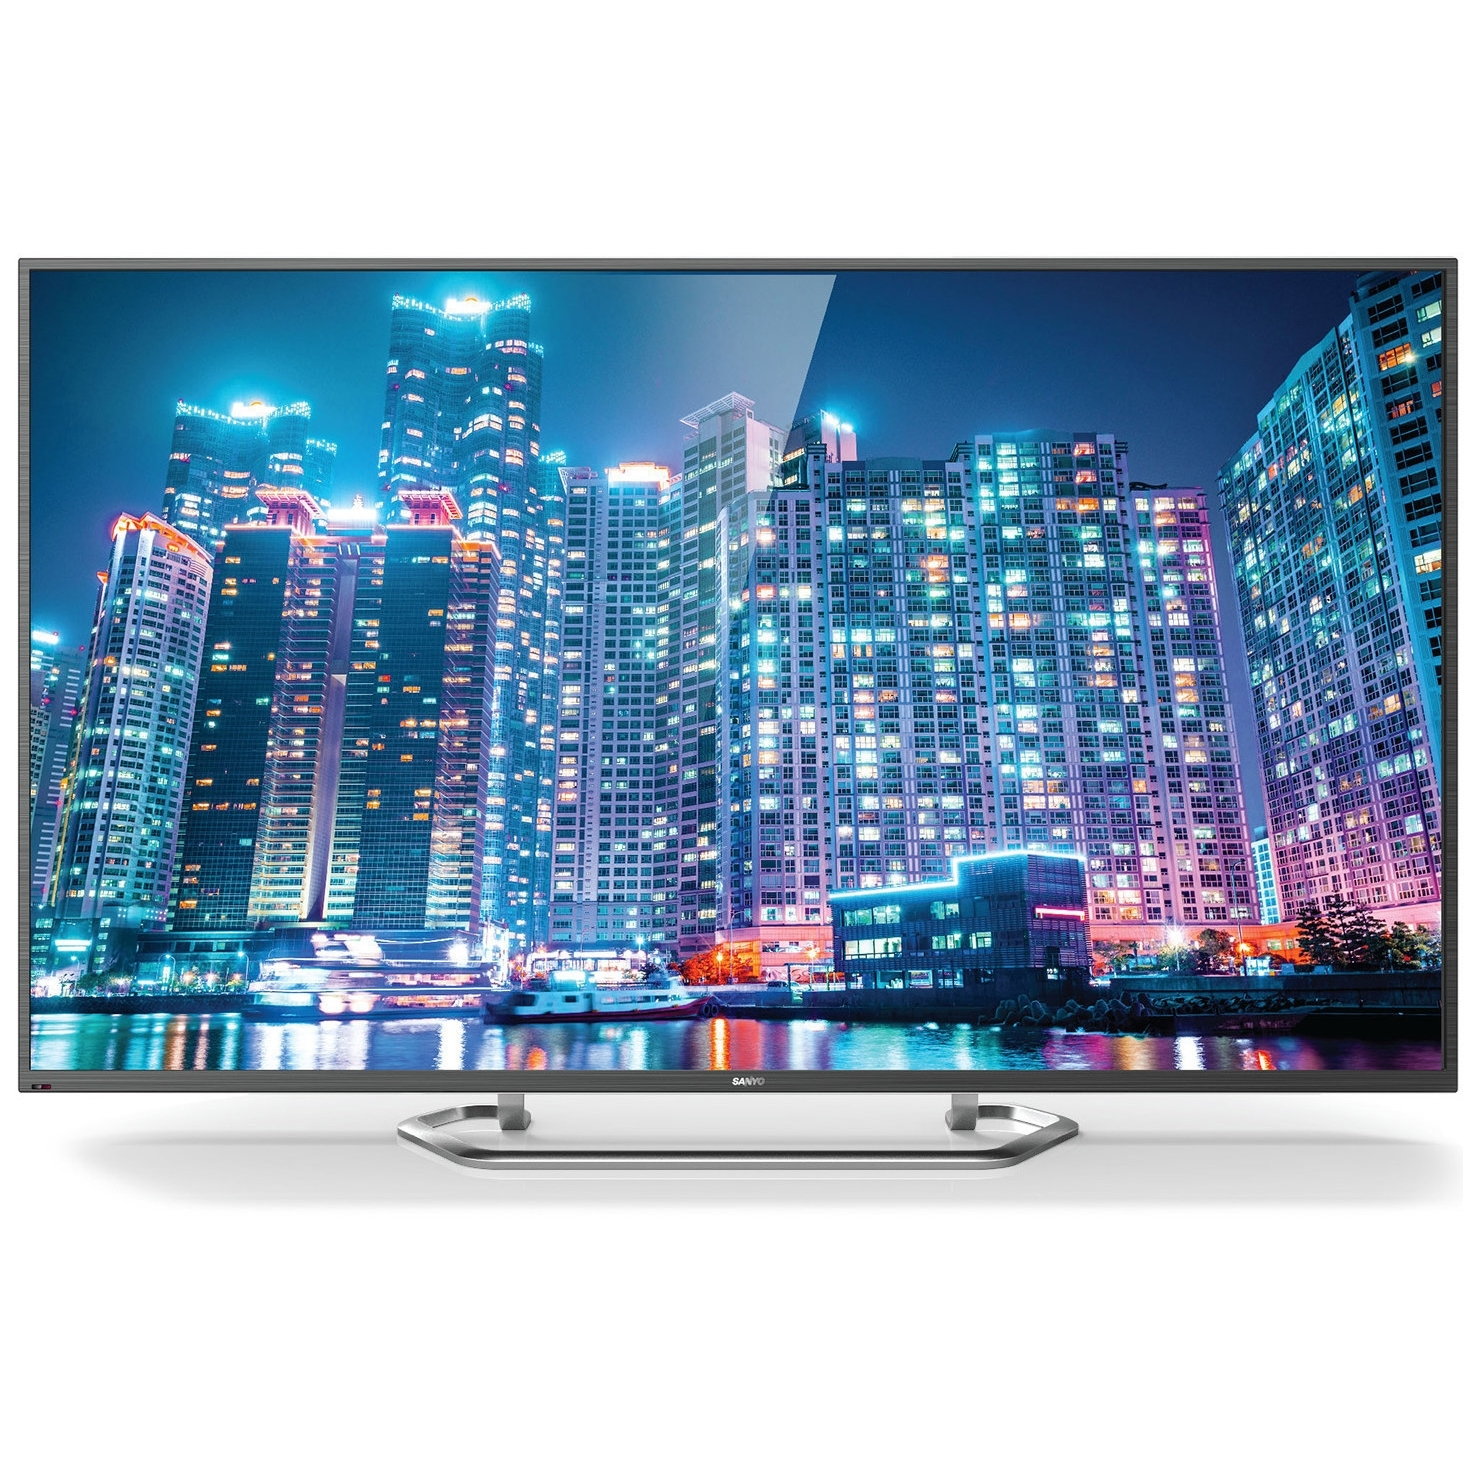 "Sanyo FVD48R4 1080P 48"" LED TV, BLACK (Certified )"